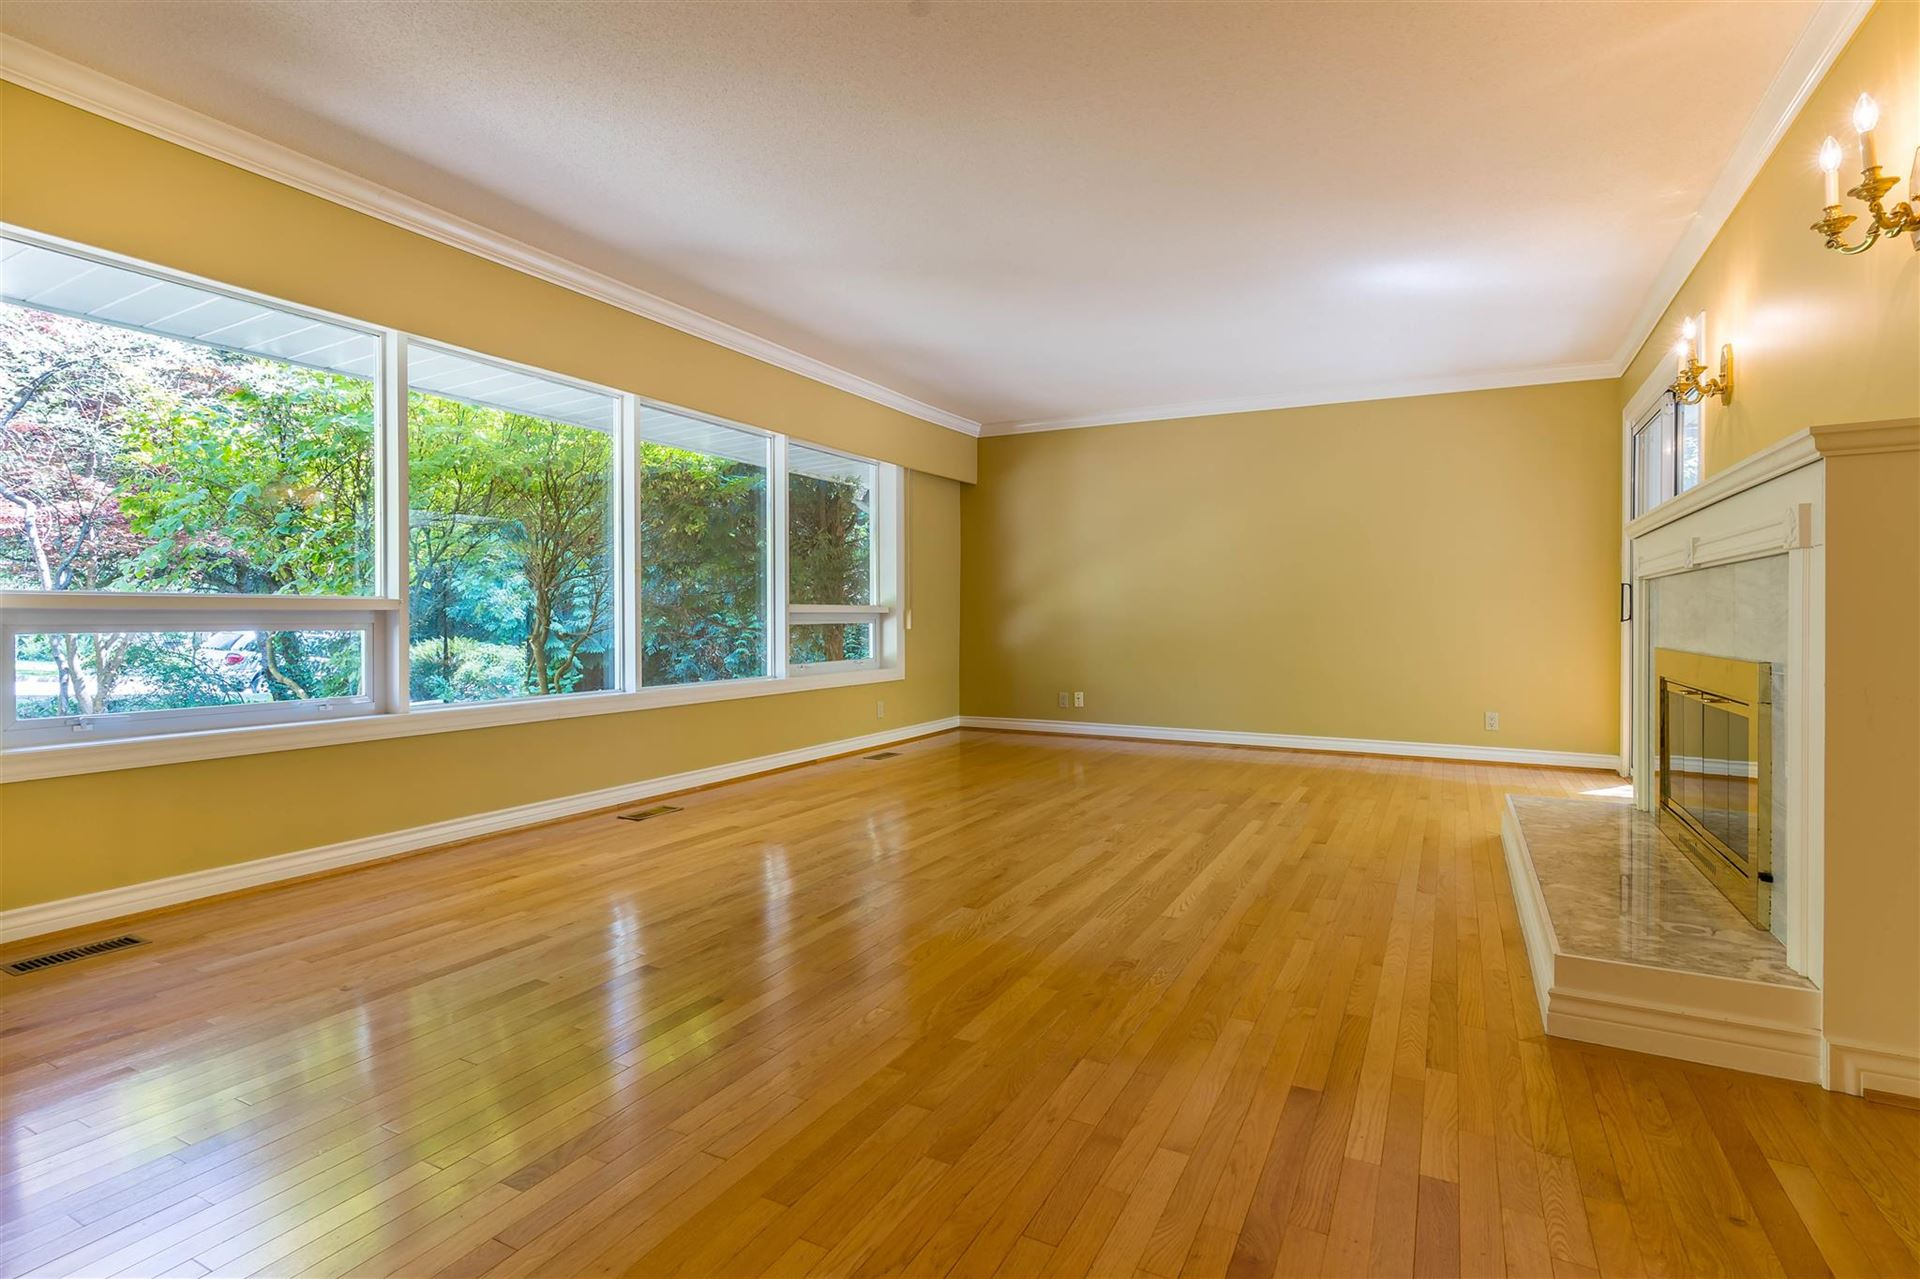 Photo of 1645 TAYLOR WAY, West Vancouver, BC V7S 1N5 (MLS # R2605446)